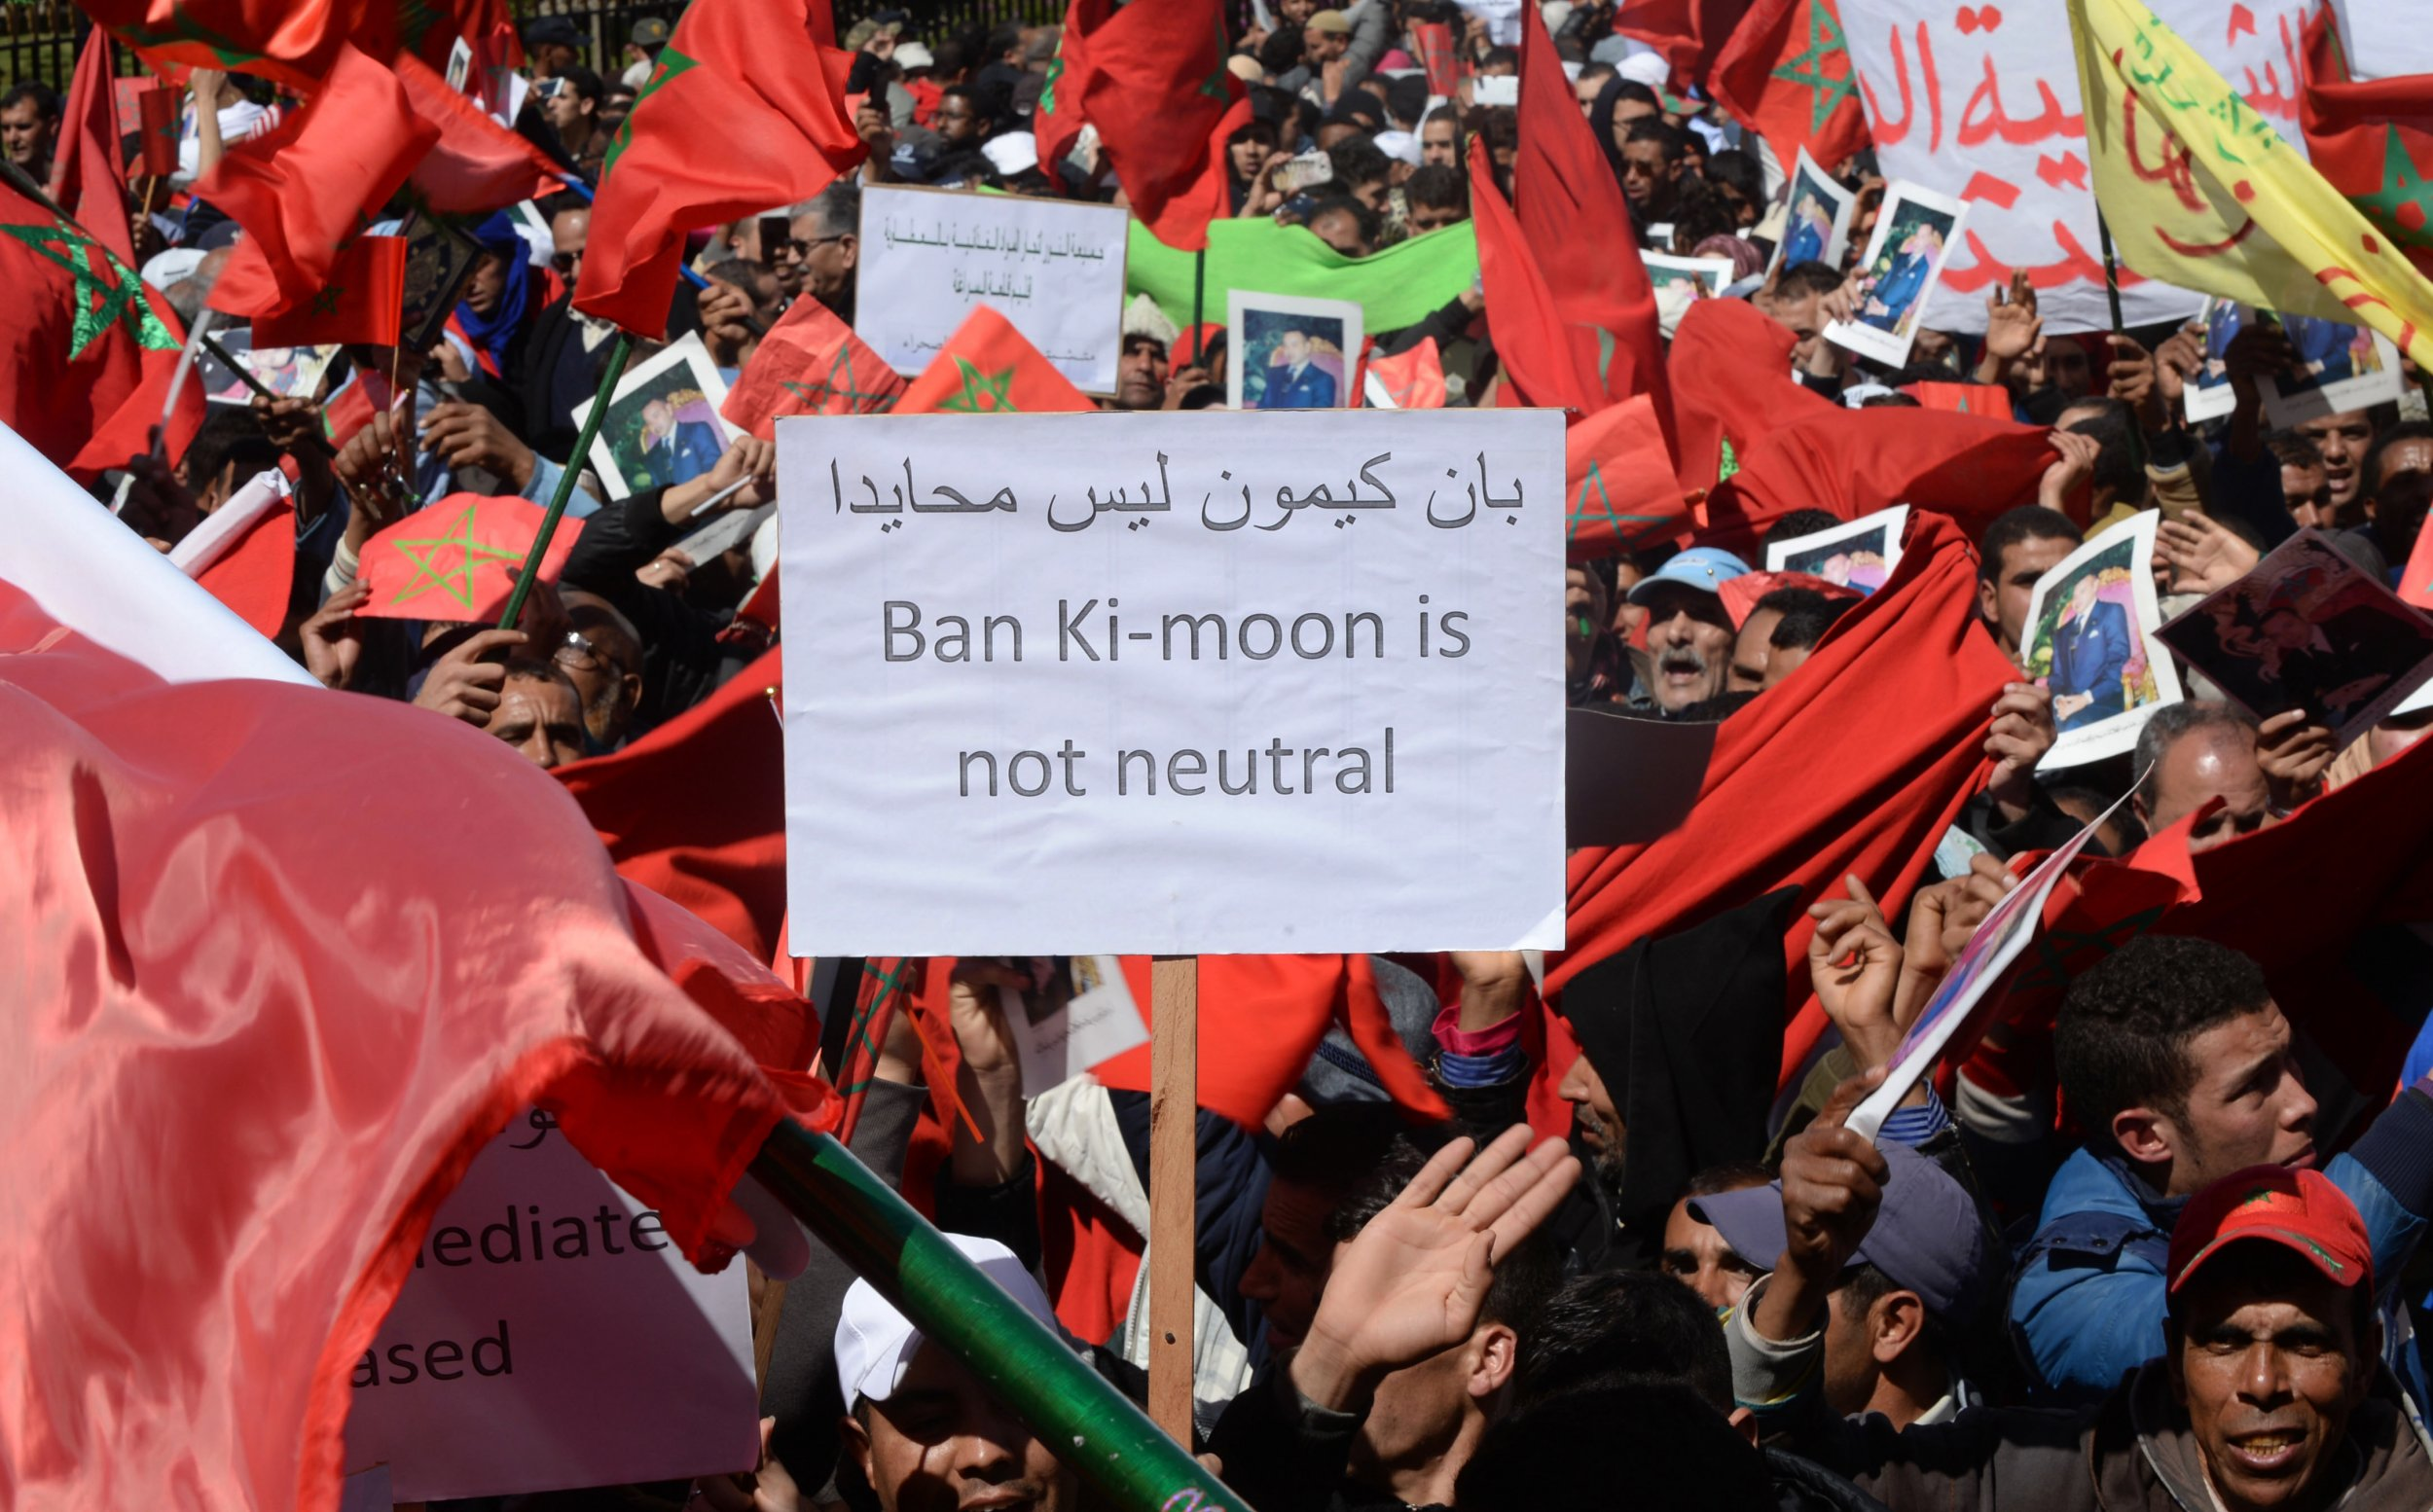 Moroccan protesters demonstrate against Ban Ki-moon's Western Sahara comments.